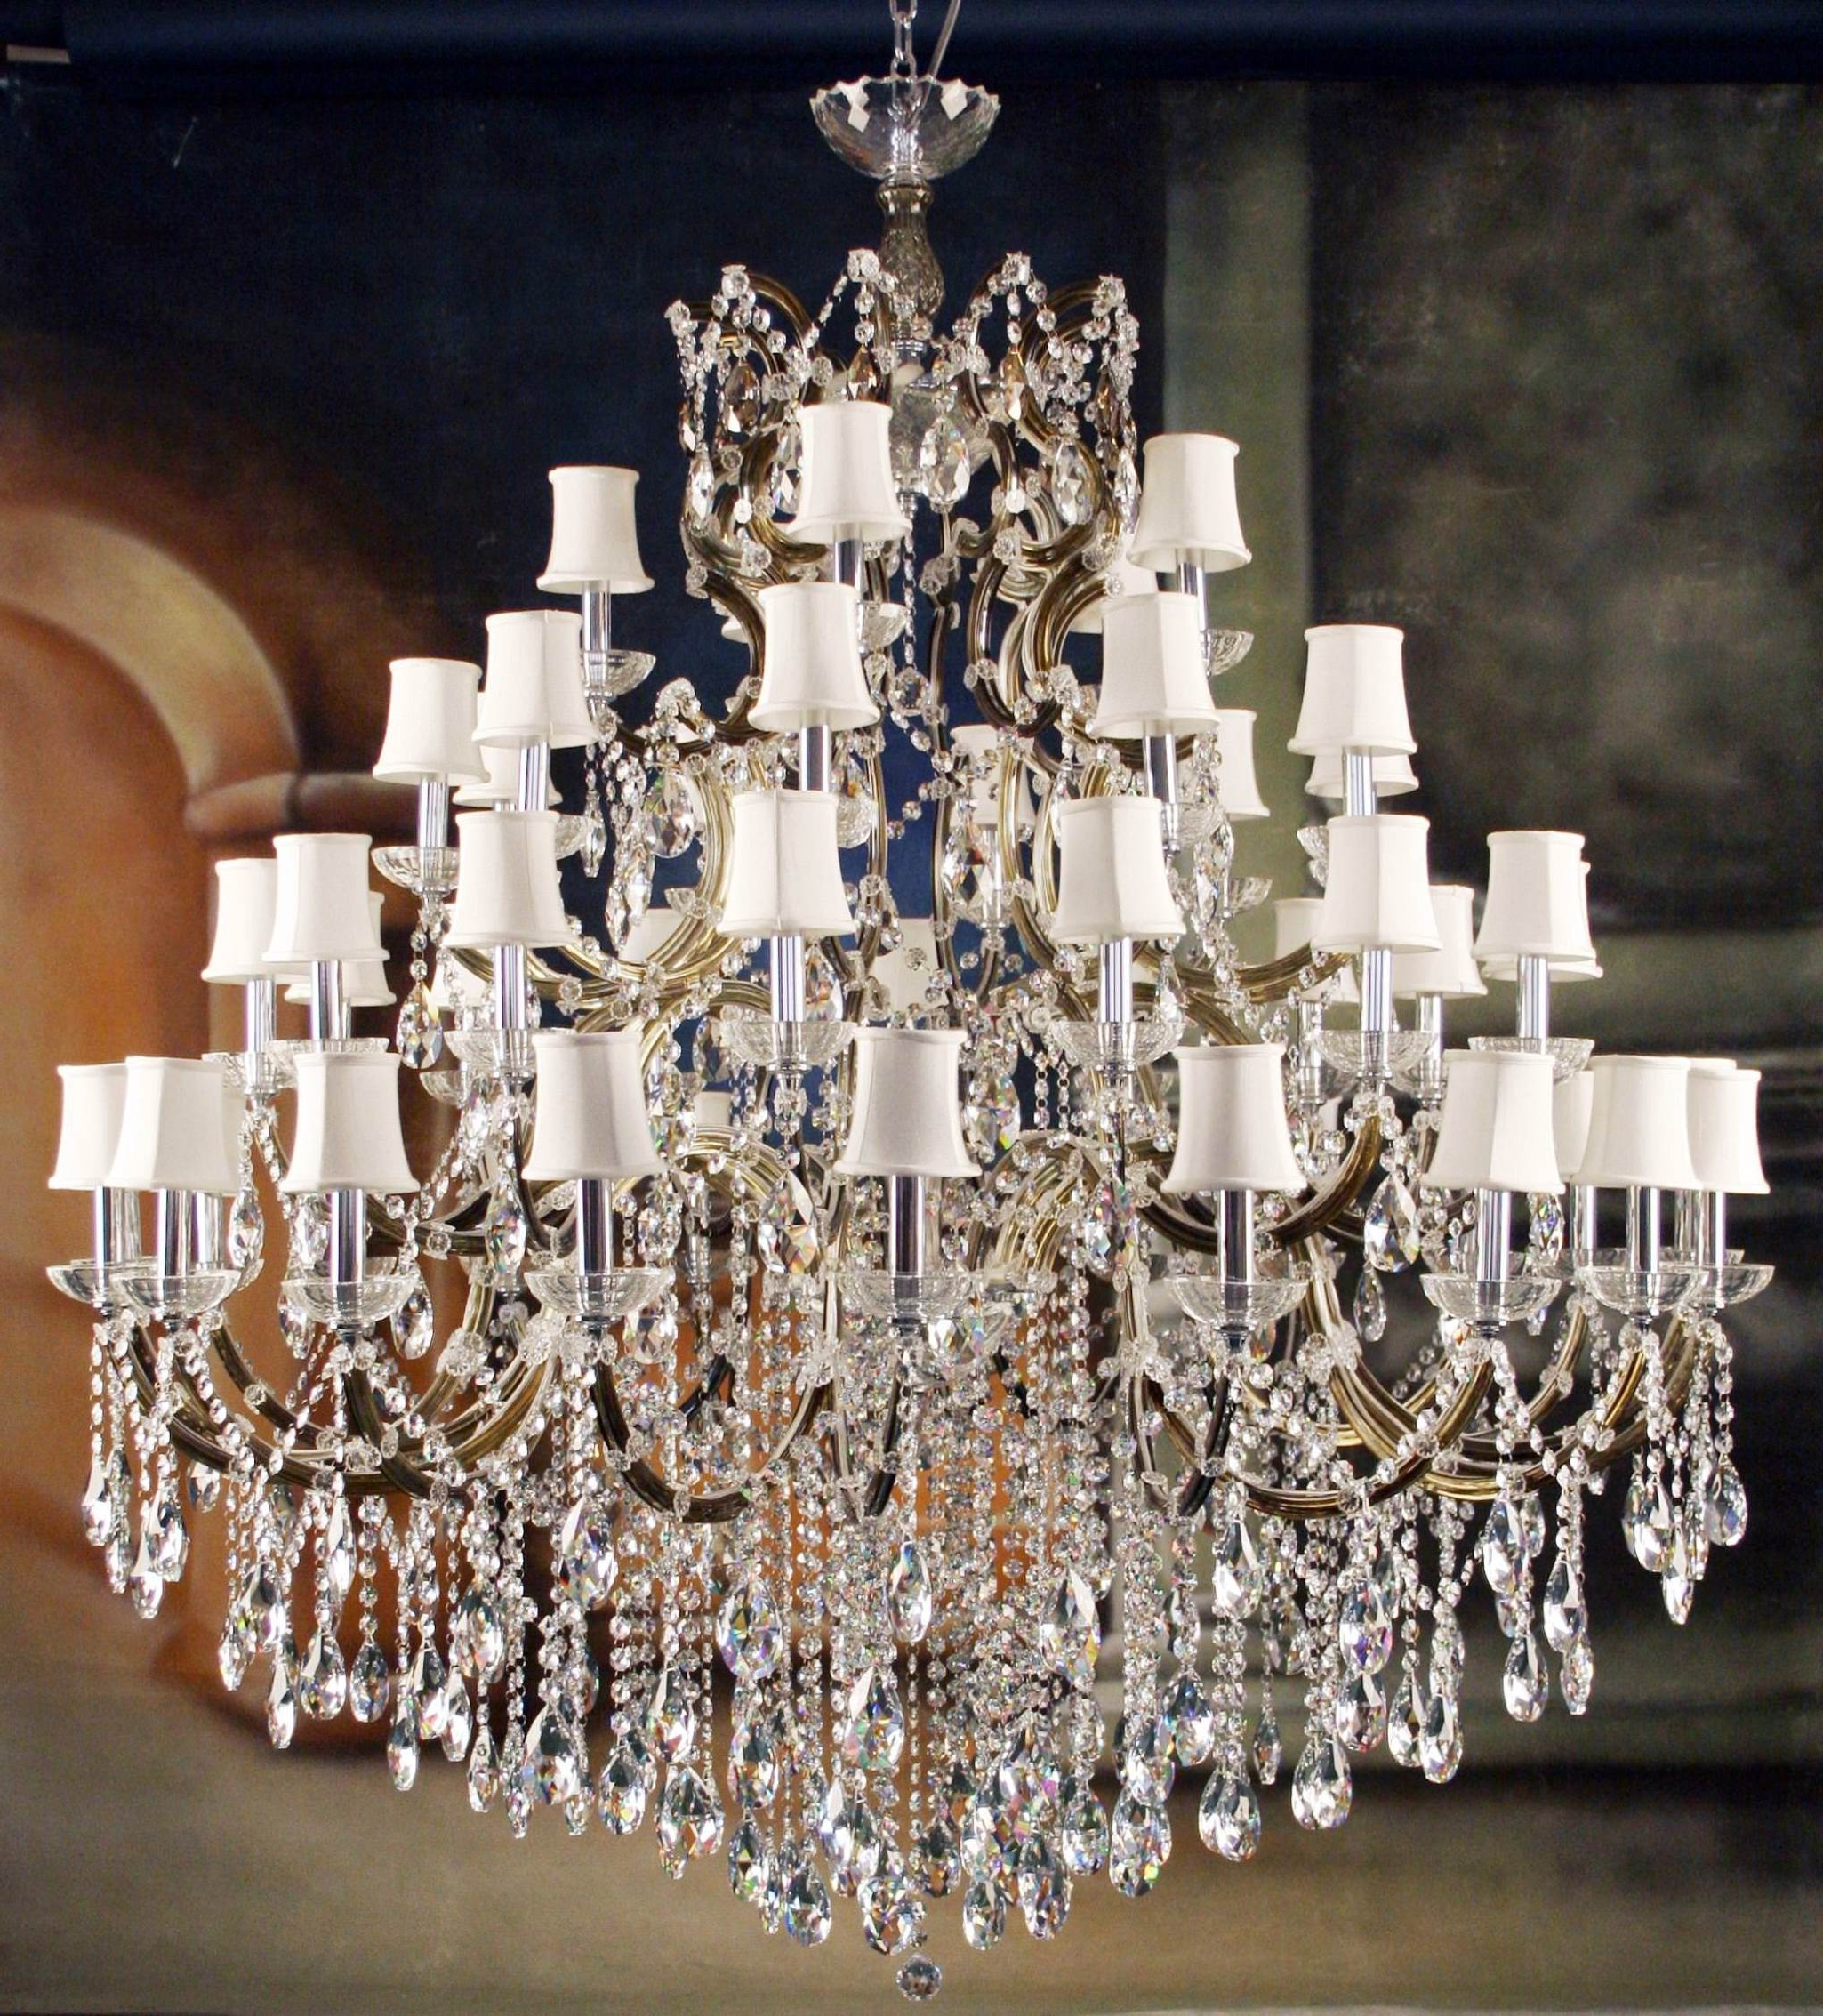 Popular Light : Fancy Living Room High Quality Crystal Chandeliers For Home With Small Rustic Crystal Chandeliers (View 7 of 15)